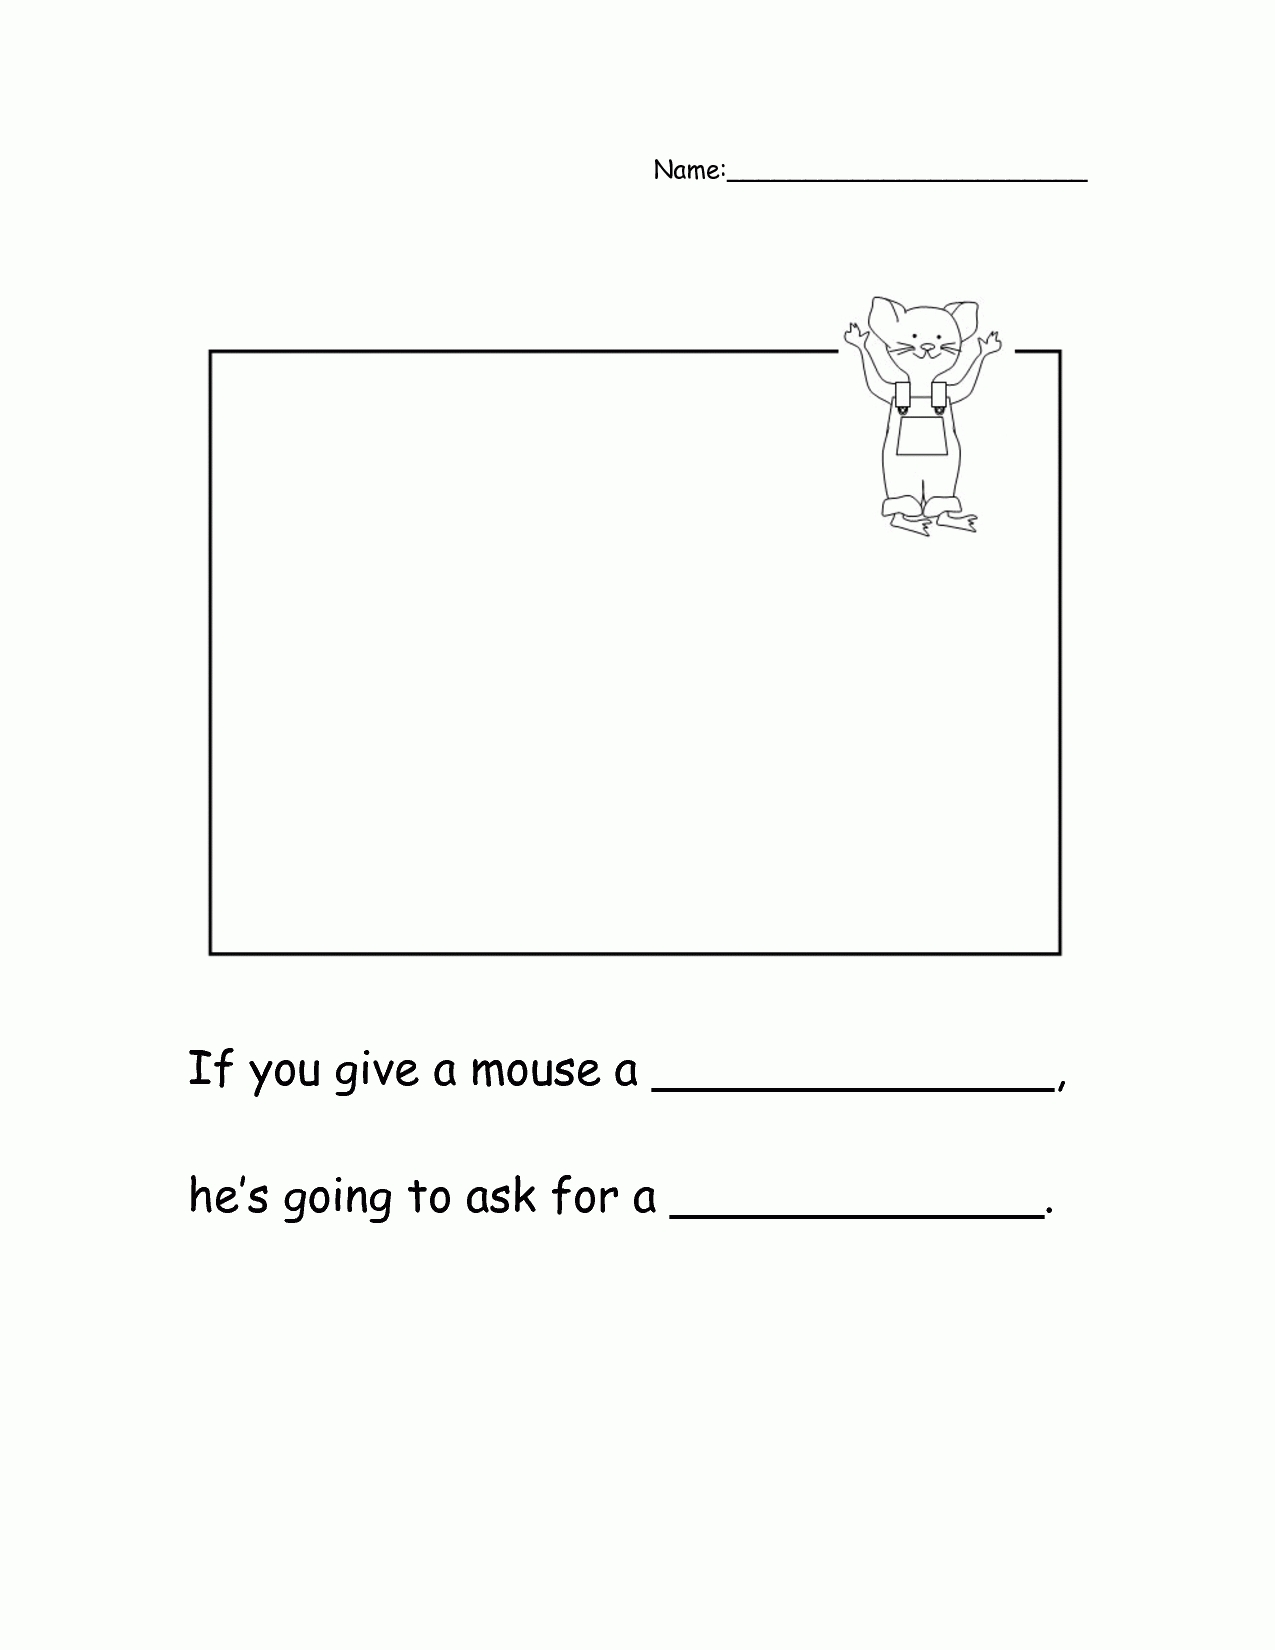 if you give a mouse a cookie coloring pages - if you give a mouse a cookie coloring pages free